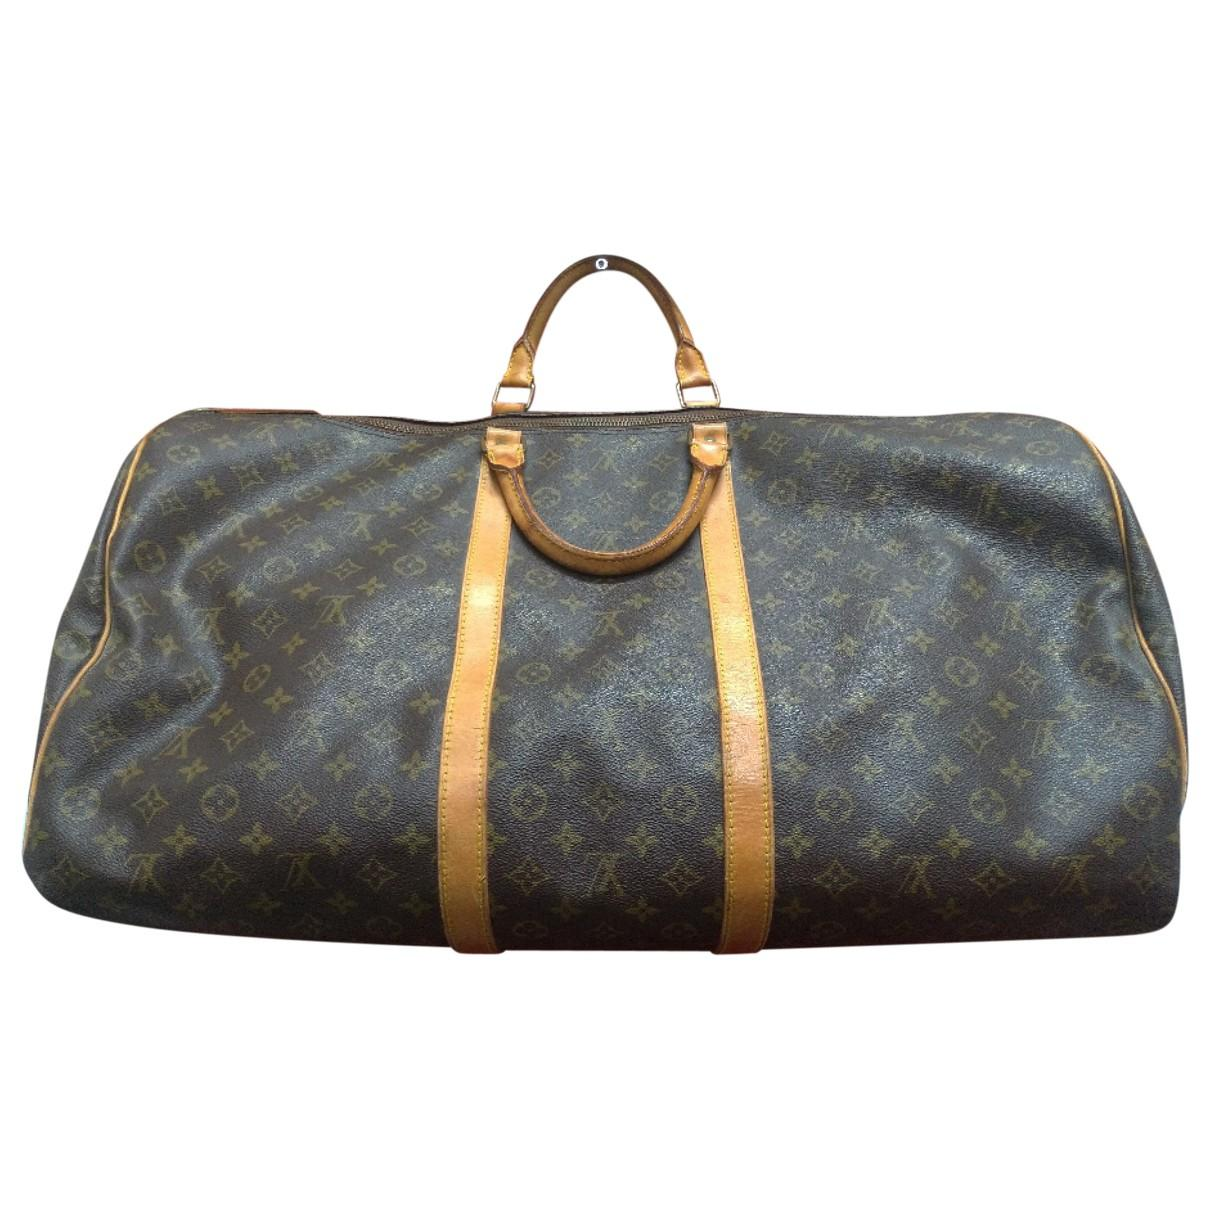 Lyst - Louis Vuitton Pre-owned Keepall Brown Cloth Bag in Brown for Men 88d9fa983f28c